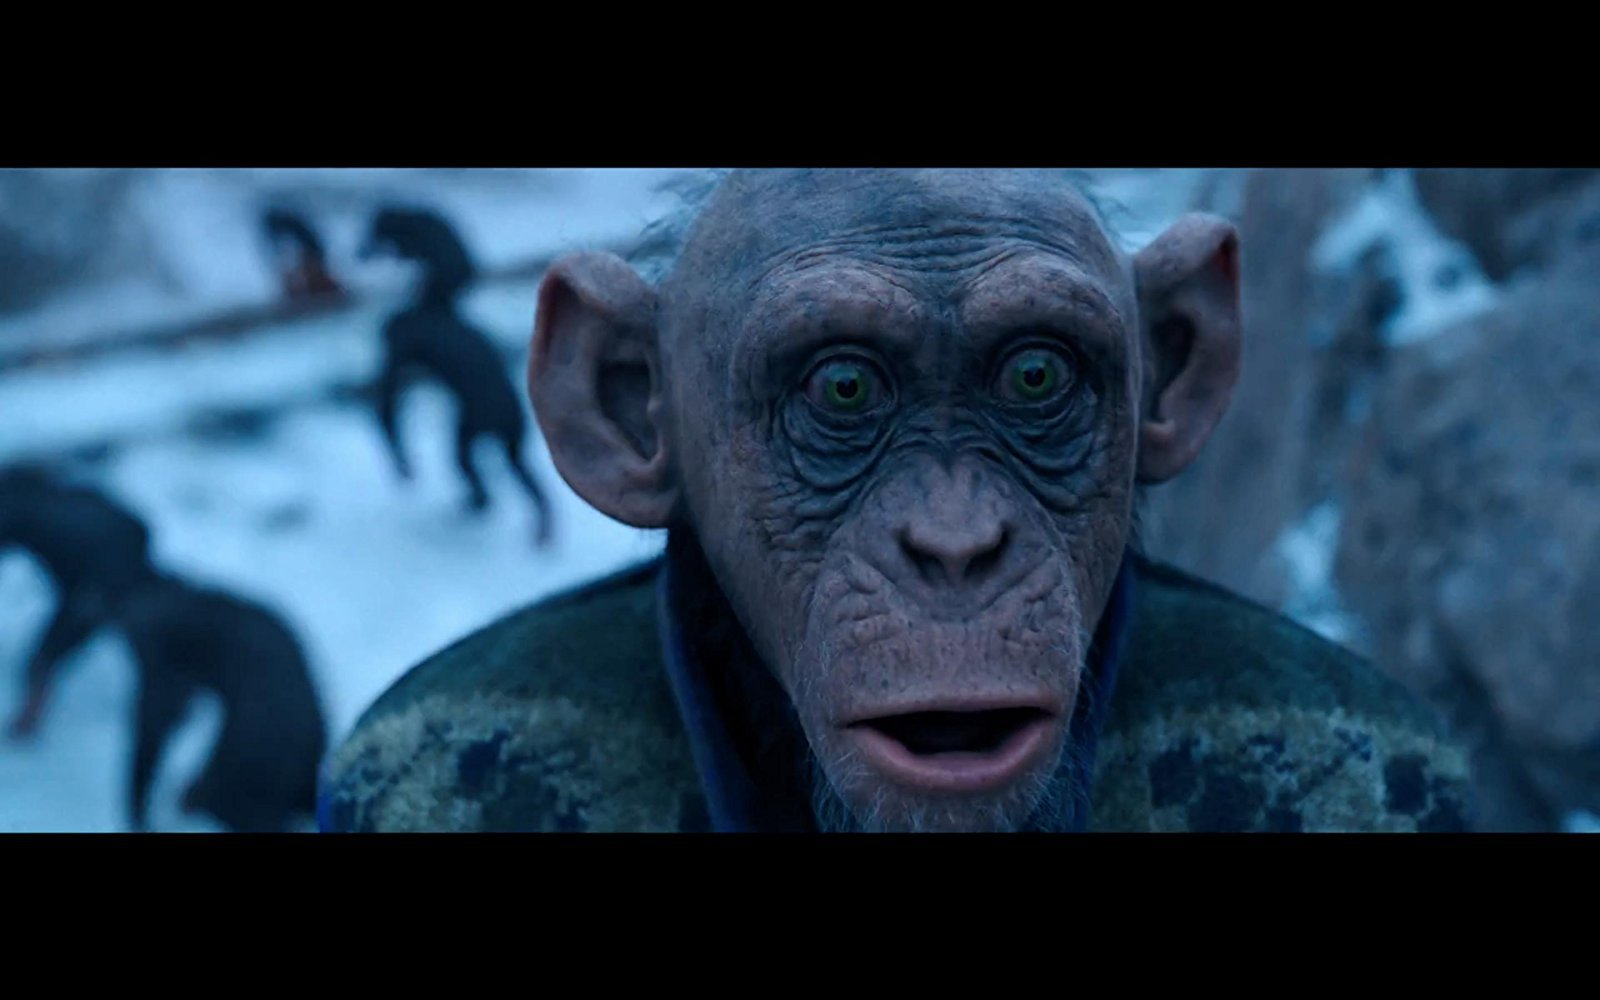 rise of the planet of the apes yify subtitles